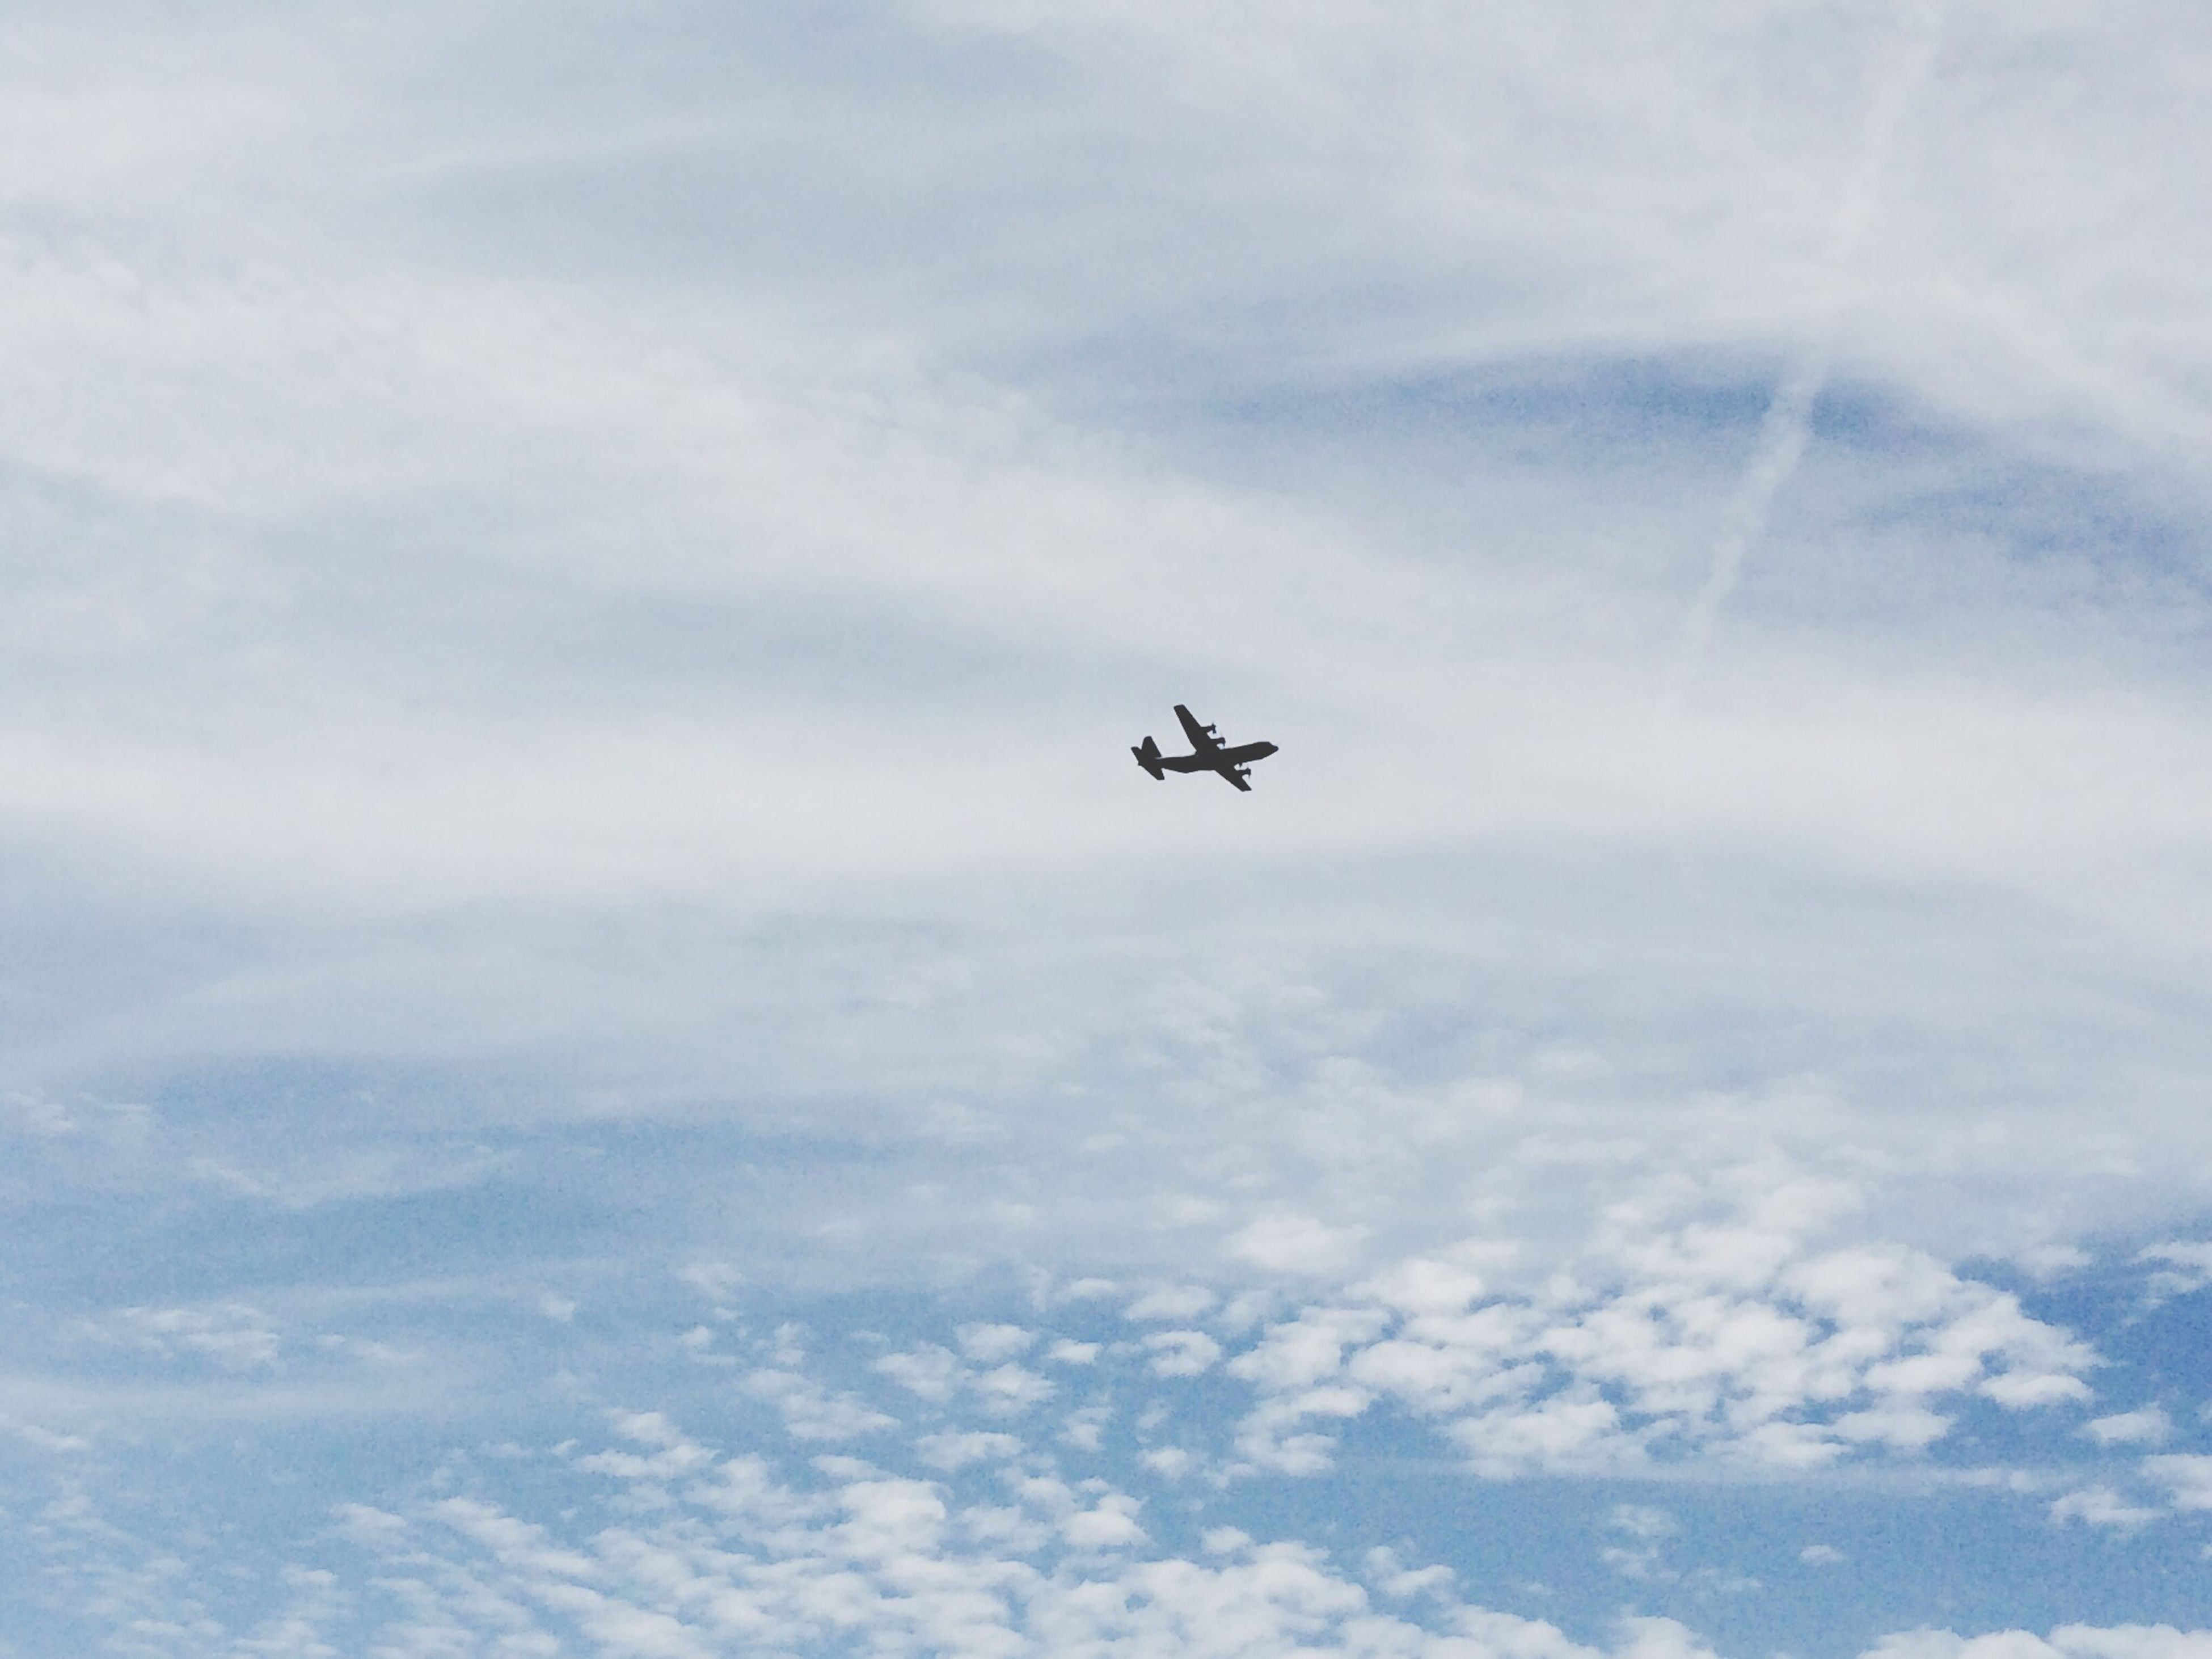 airplane, air vehicle, transportation, flying, mode of transport, mid-air, sky, low angle view, cloud - sky, on the move, travel, journey, public transportation, commercial airplane, cloud, helicopter, nature, cloudy, day, aircraft wing